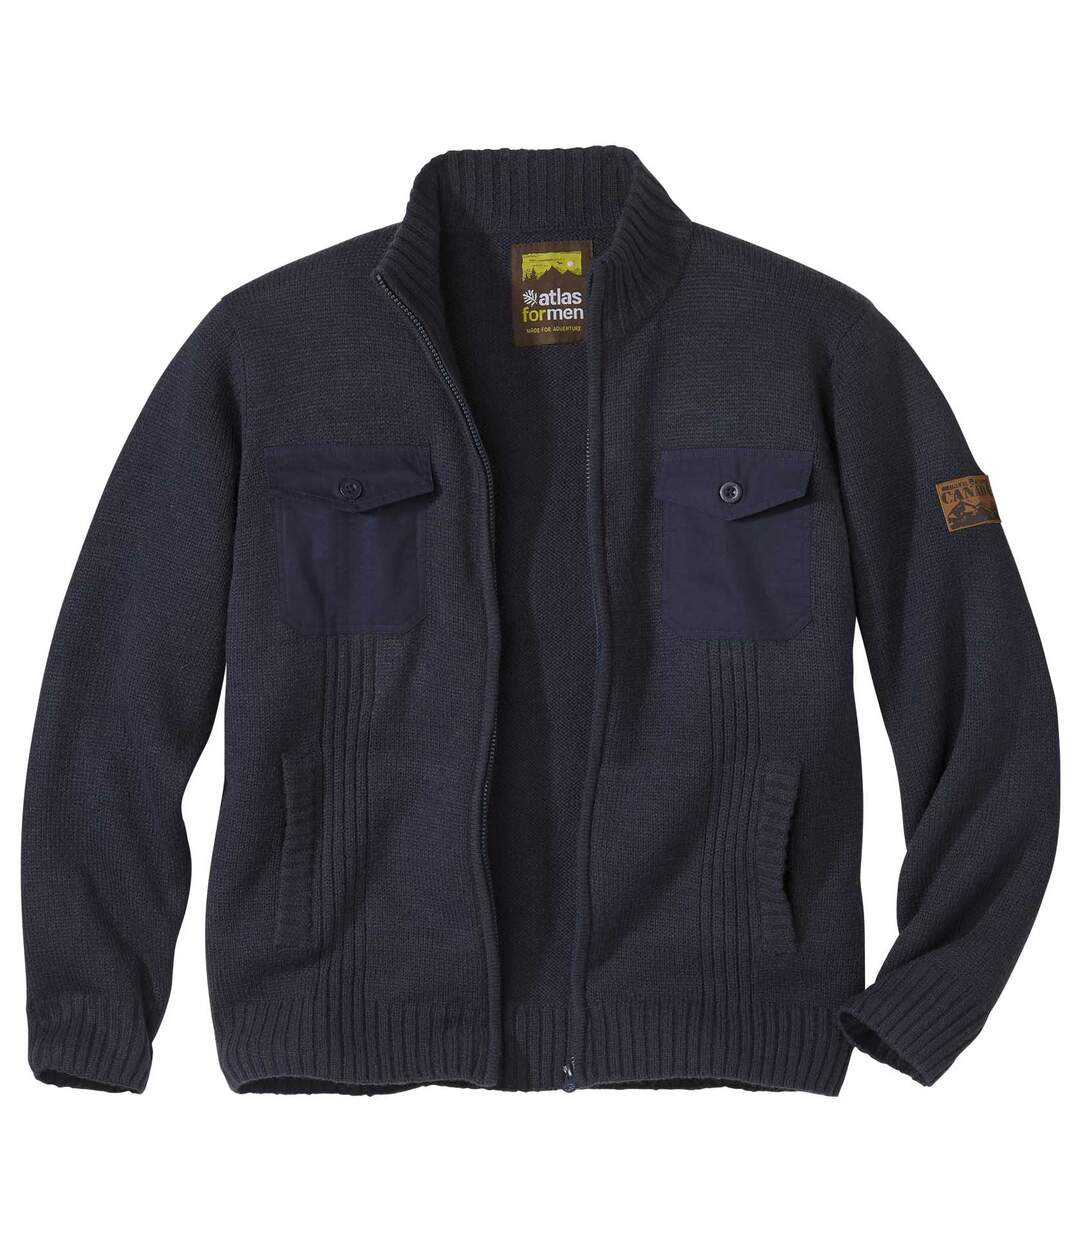 Men's Navy Knitted Canada Jacket